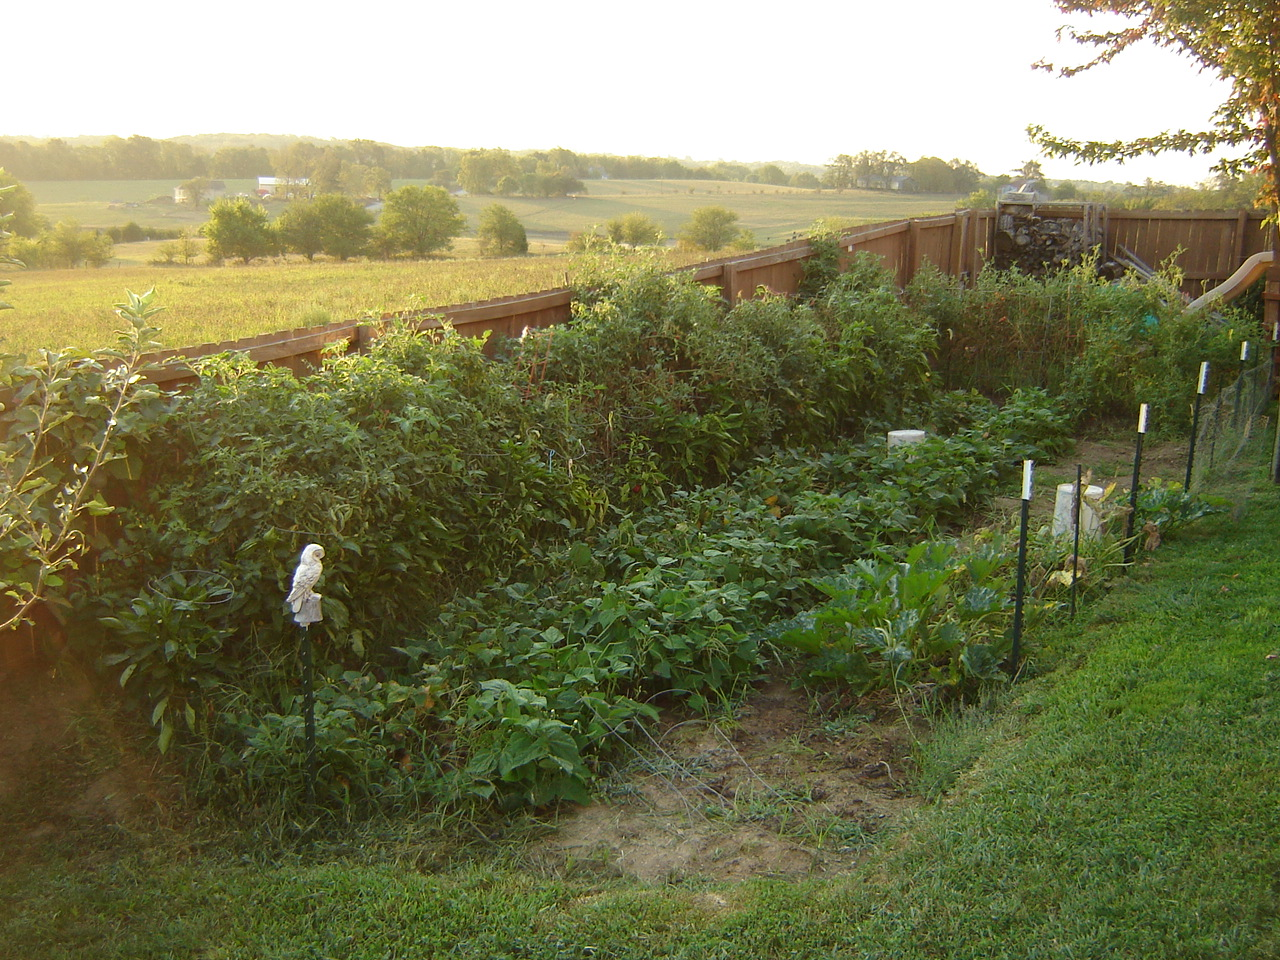 one reason not to rely on a shtf vegetable garden